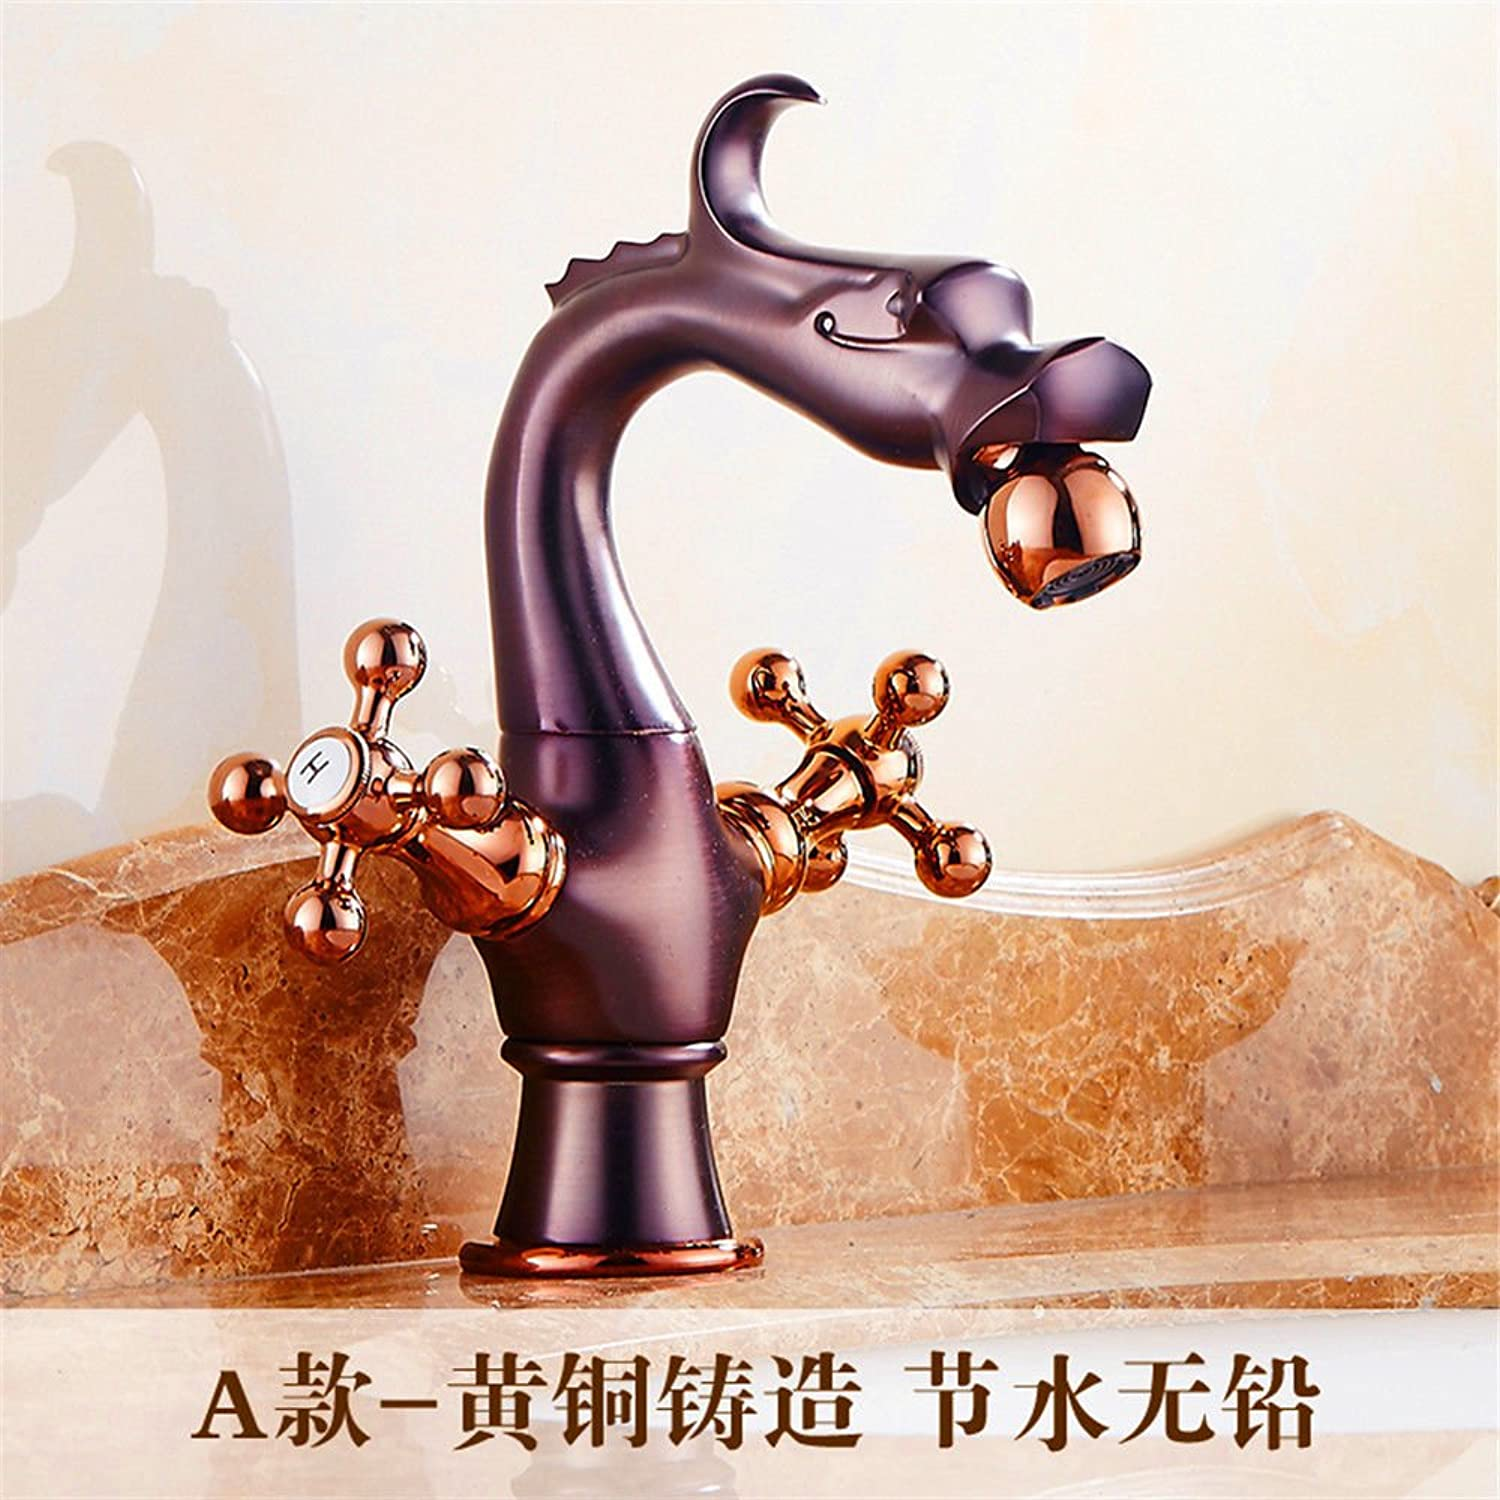 Lpophy Bathroom Sink Mixer Taps Faucet Bath Waterfall Cold and Hot Water Tap for Washroom Bathroom and Kitchen Hot and Cold Single Hole pink gold Copper Retro A